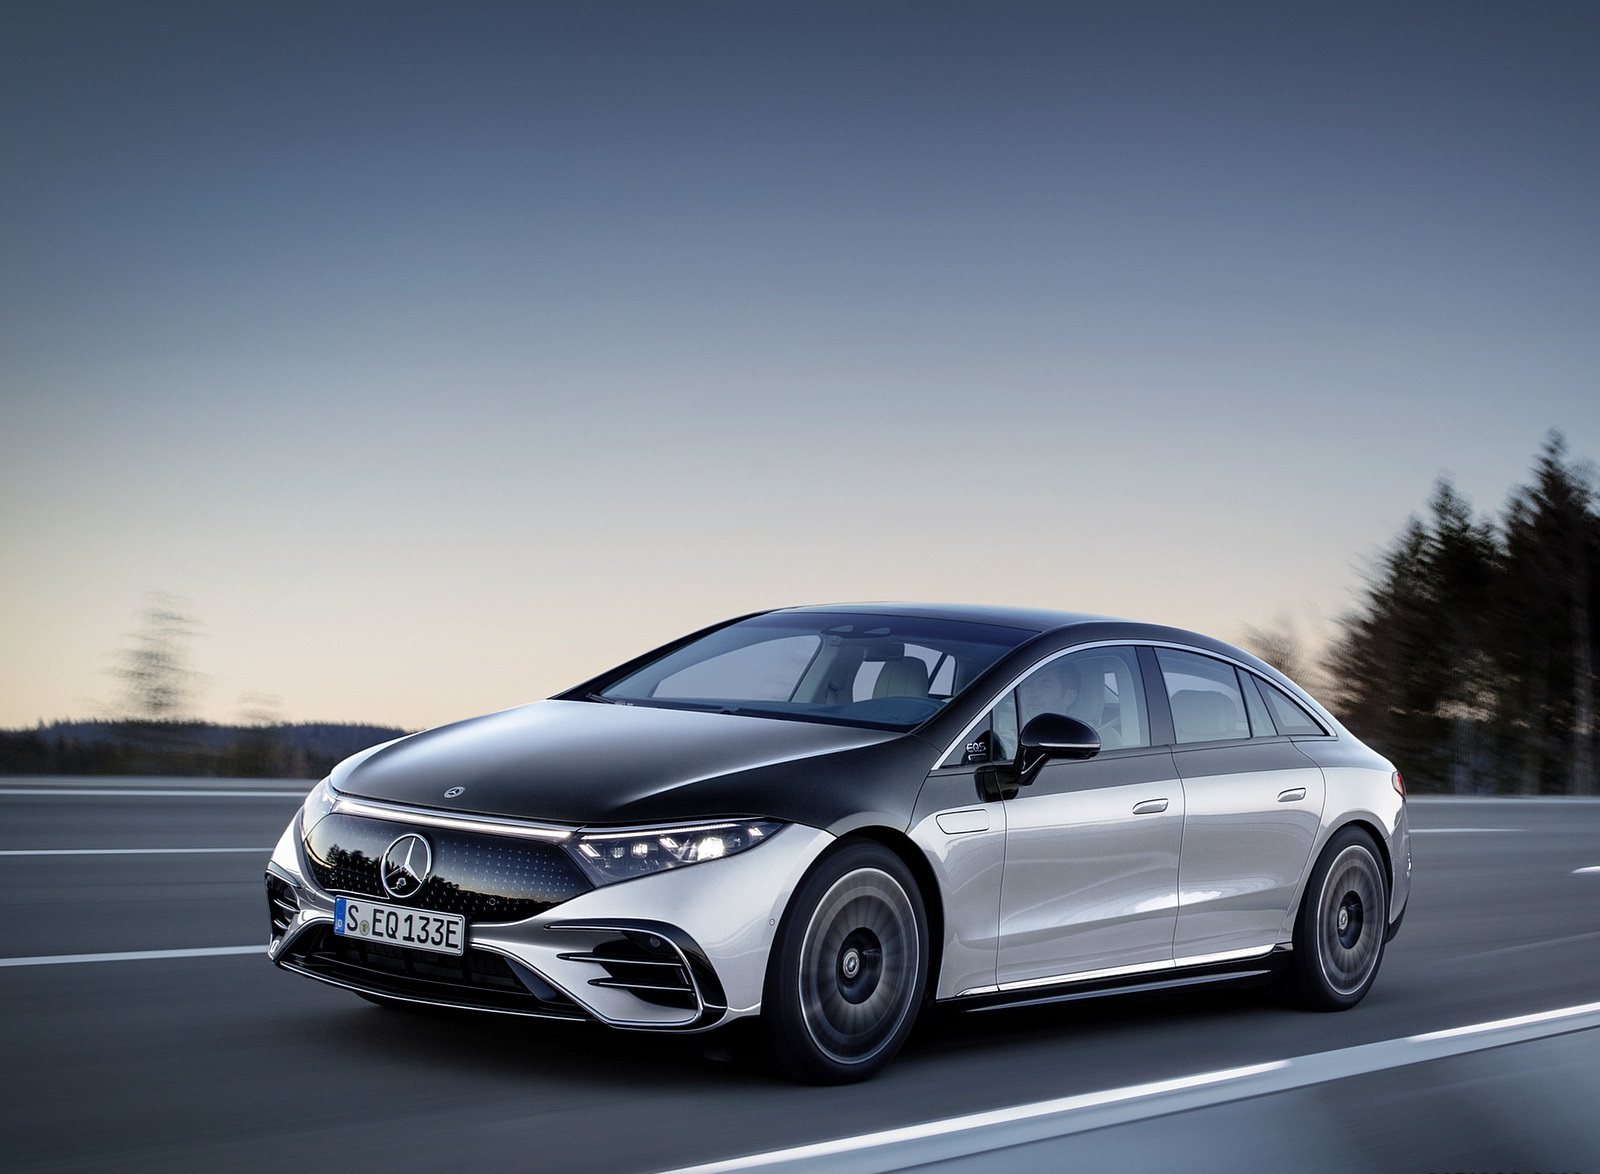 2022 Mercedes-Benz EQS 580 4MATIC AMG-Line Edition 1 (Color: High-Tech Silver Obsidian Black) Front Three-Quarter Wallpapers (4)